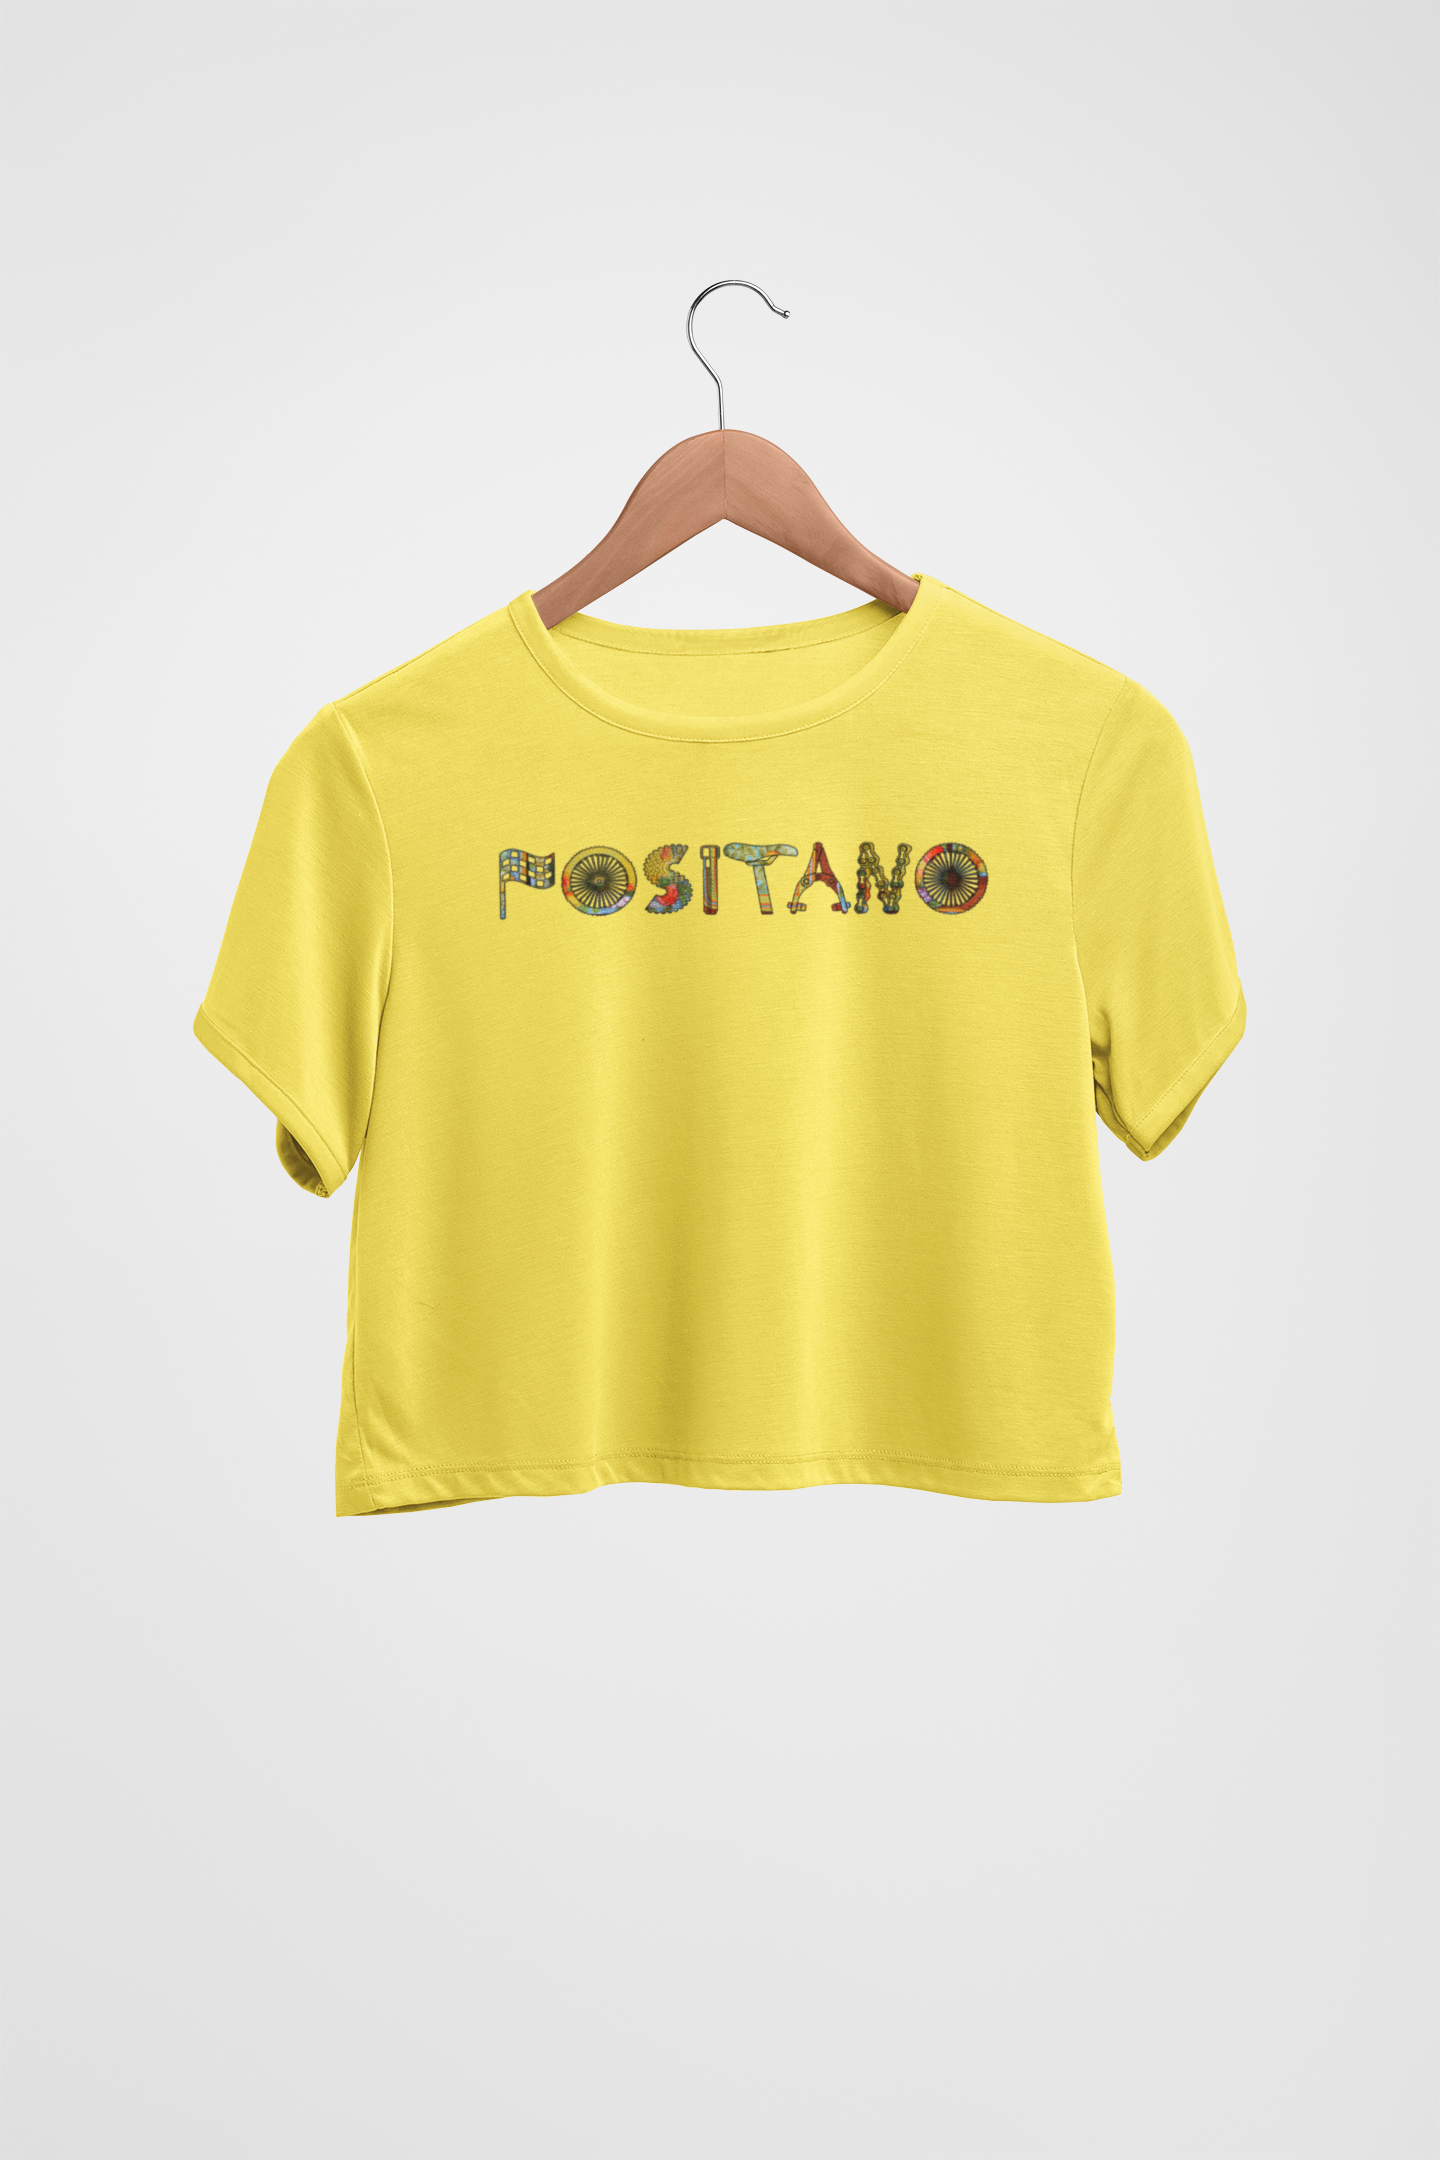 Positano Crop Top